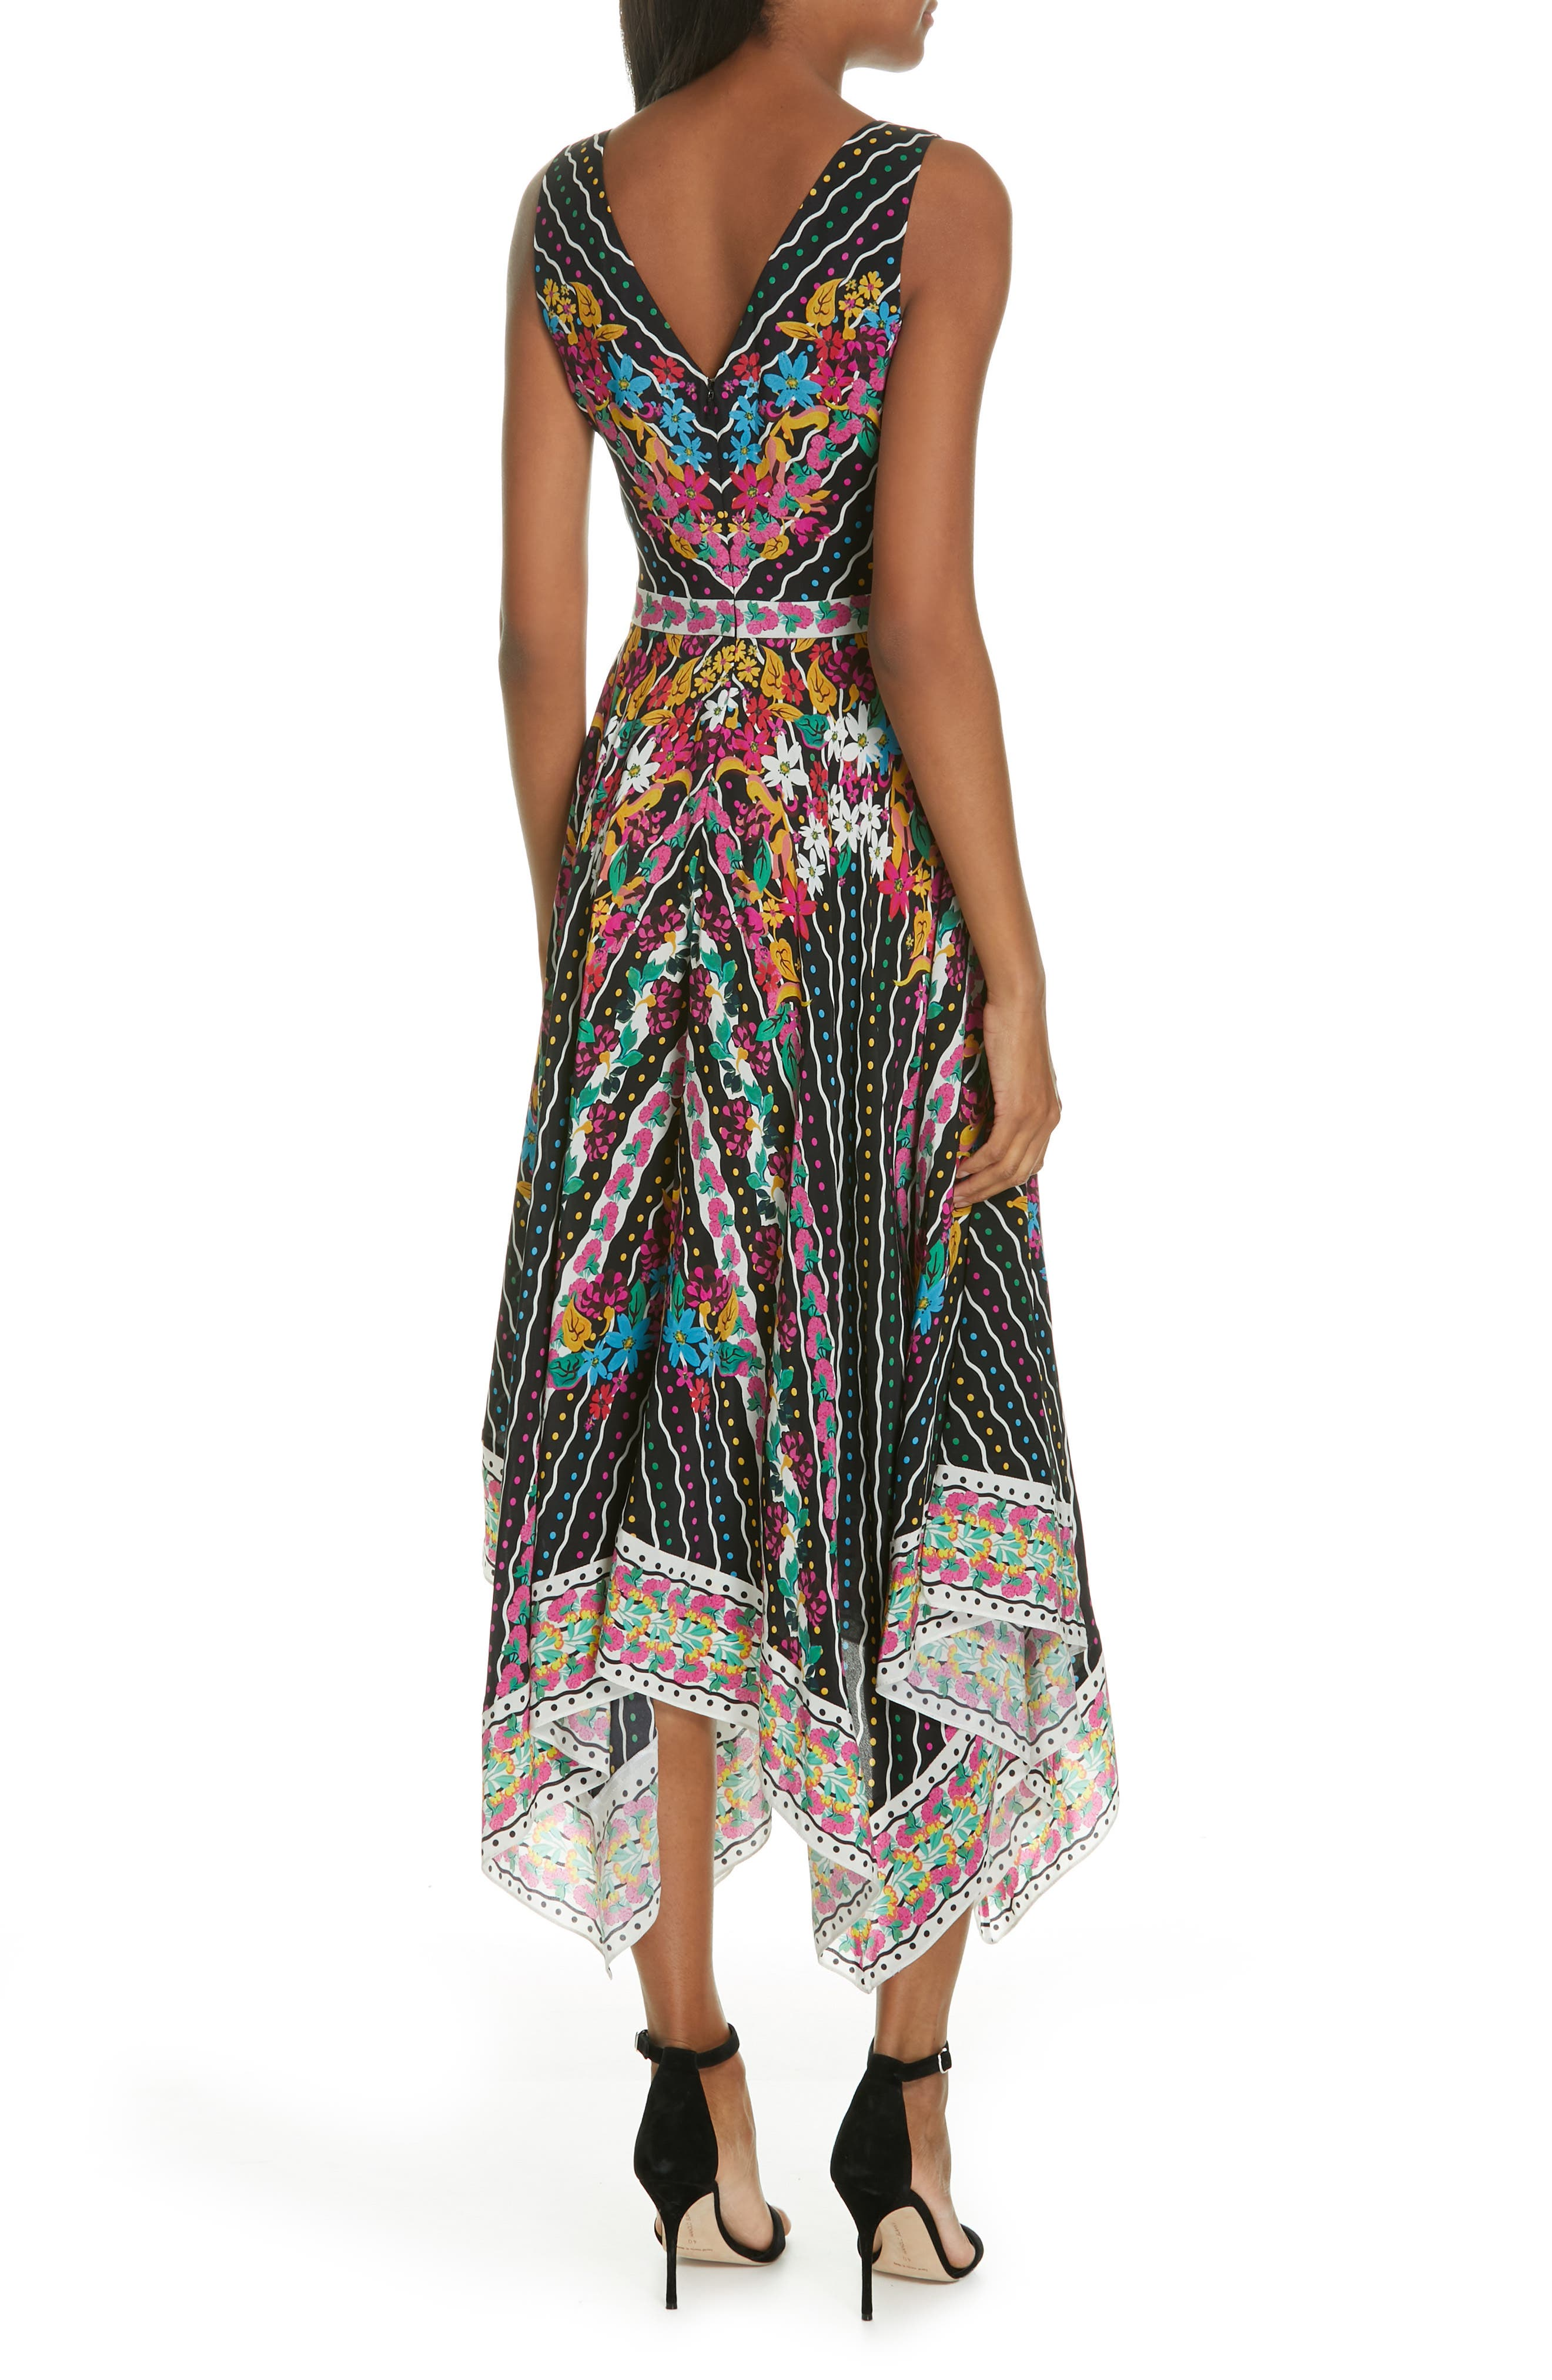 SALONI, Zuri Floral Print Dress, Alternate thumbnail 2, color, 001